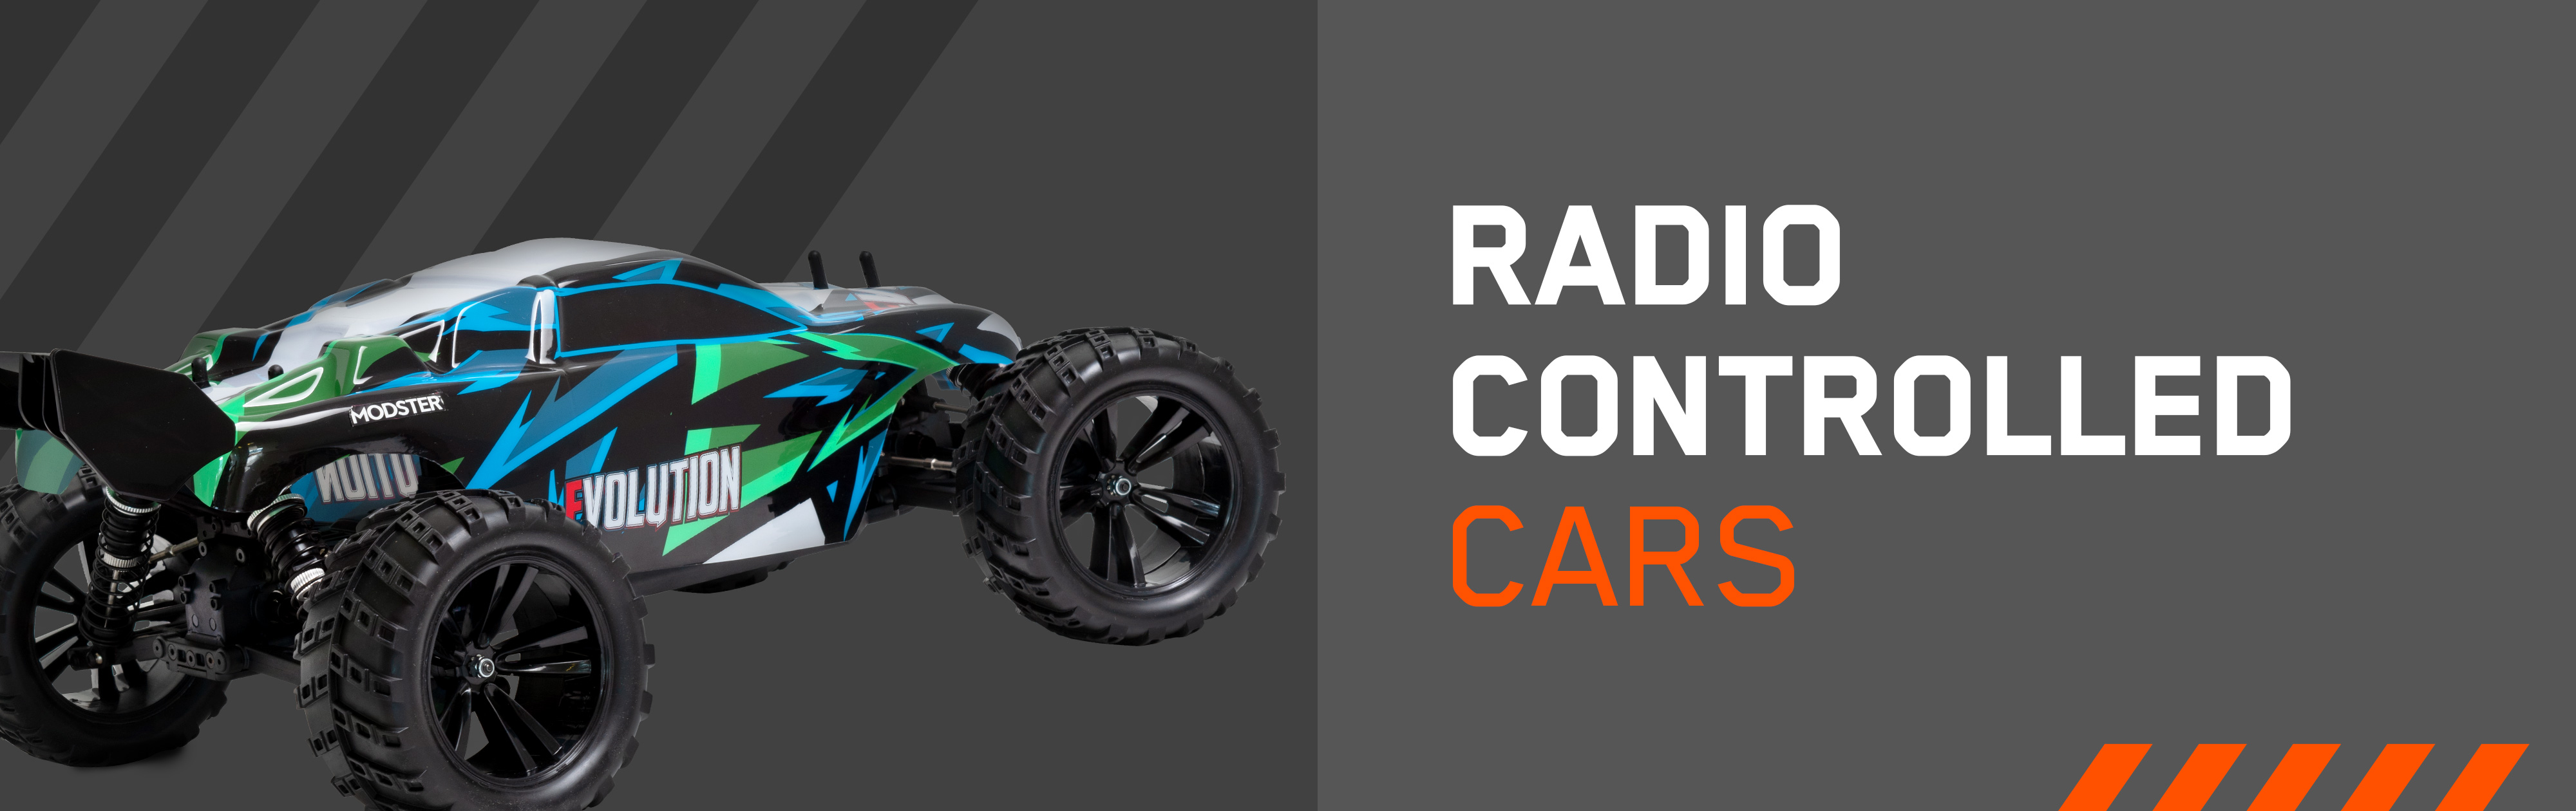 Modster-RC-Cars-kaufen